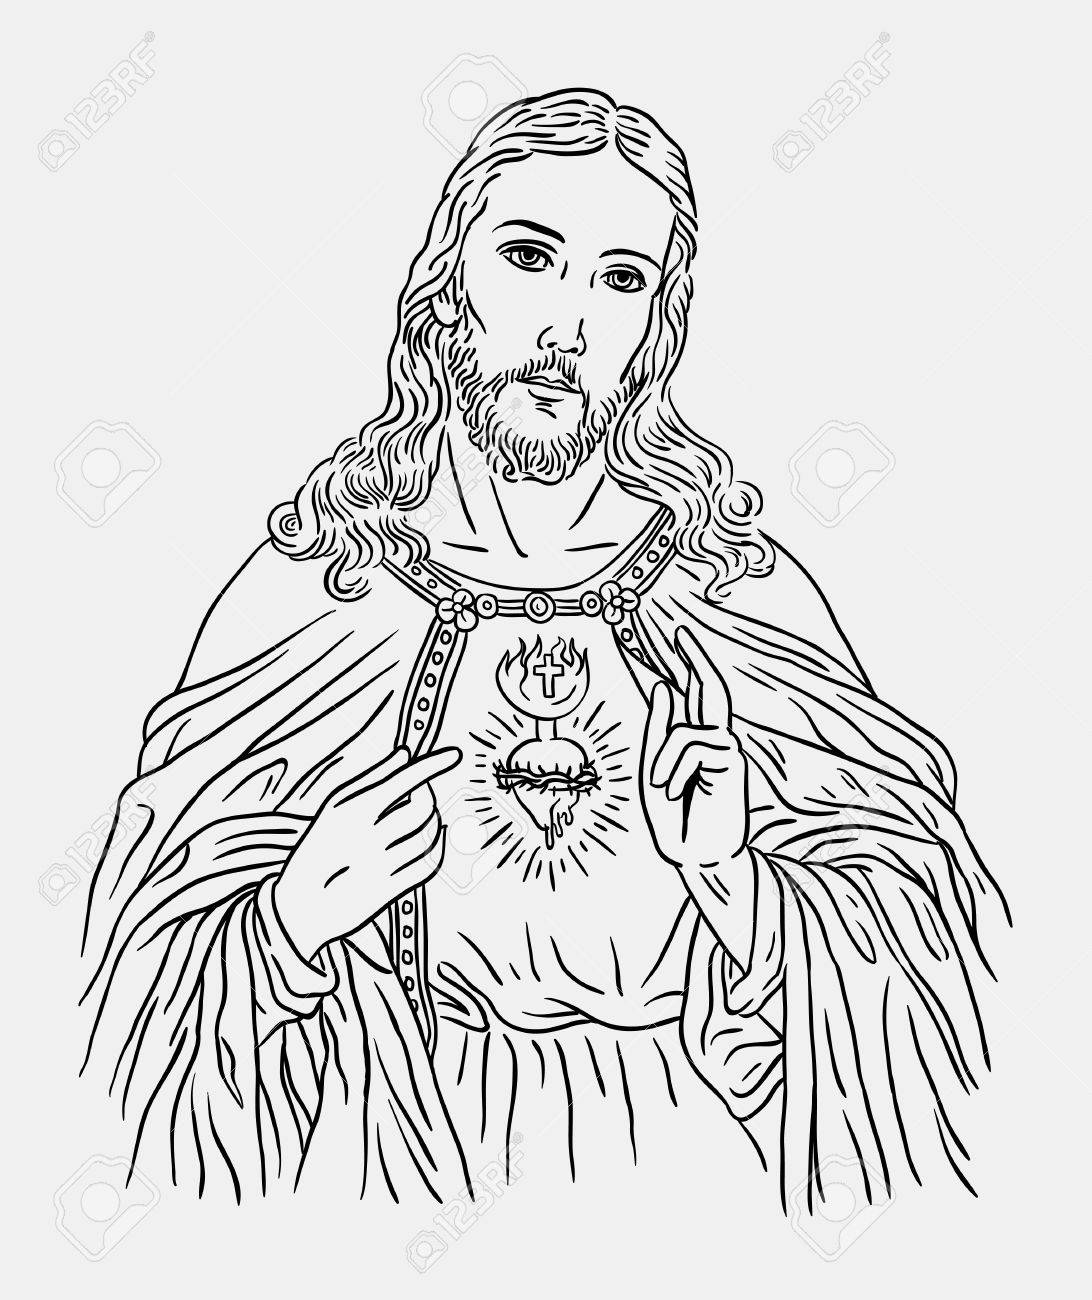 1092x1300 Jesus Christ Catholic Religion Art Line Drawing Style. Good Use